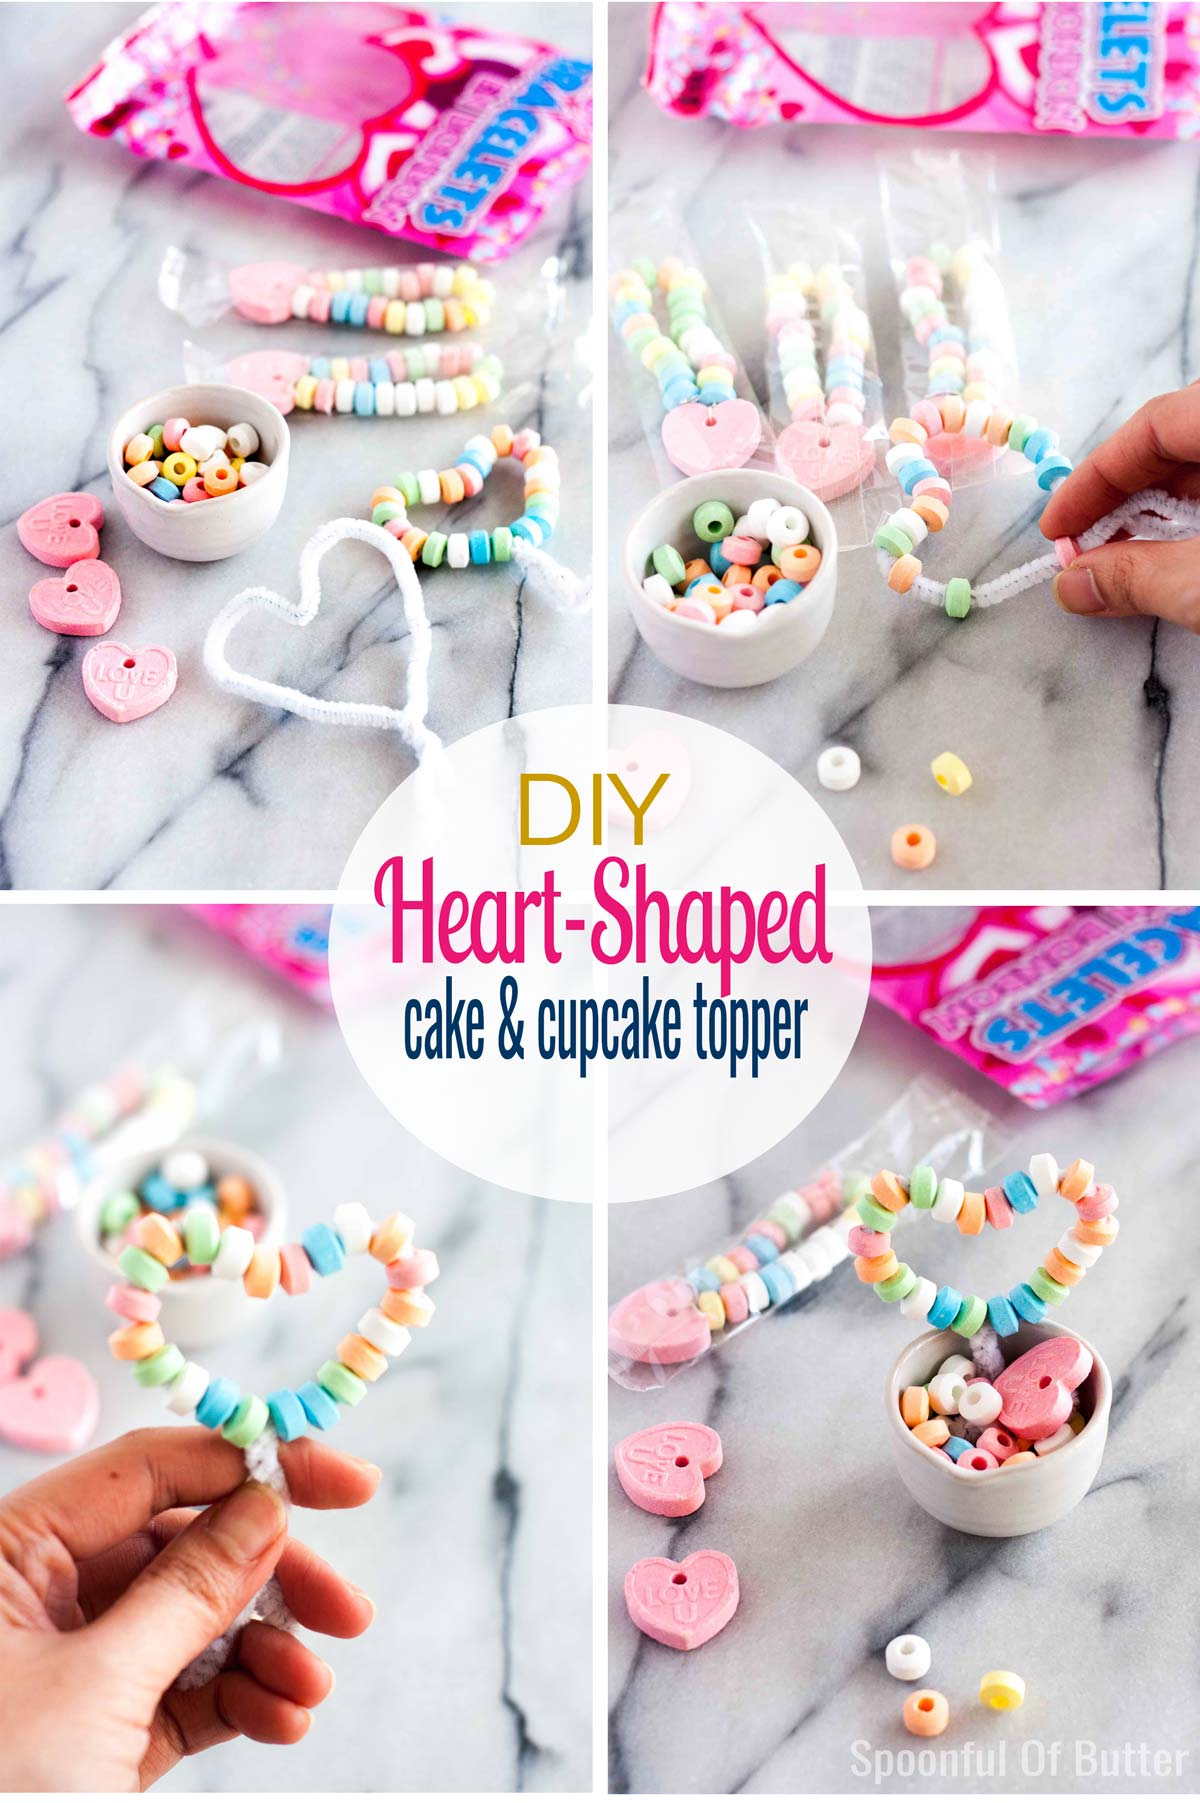 Moist, fluffy chocolate cupcake + luscious whipped caramel frosting + easy DIY heart topper. How cute and delicious is that!